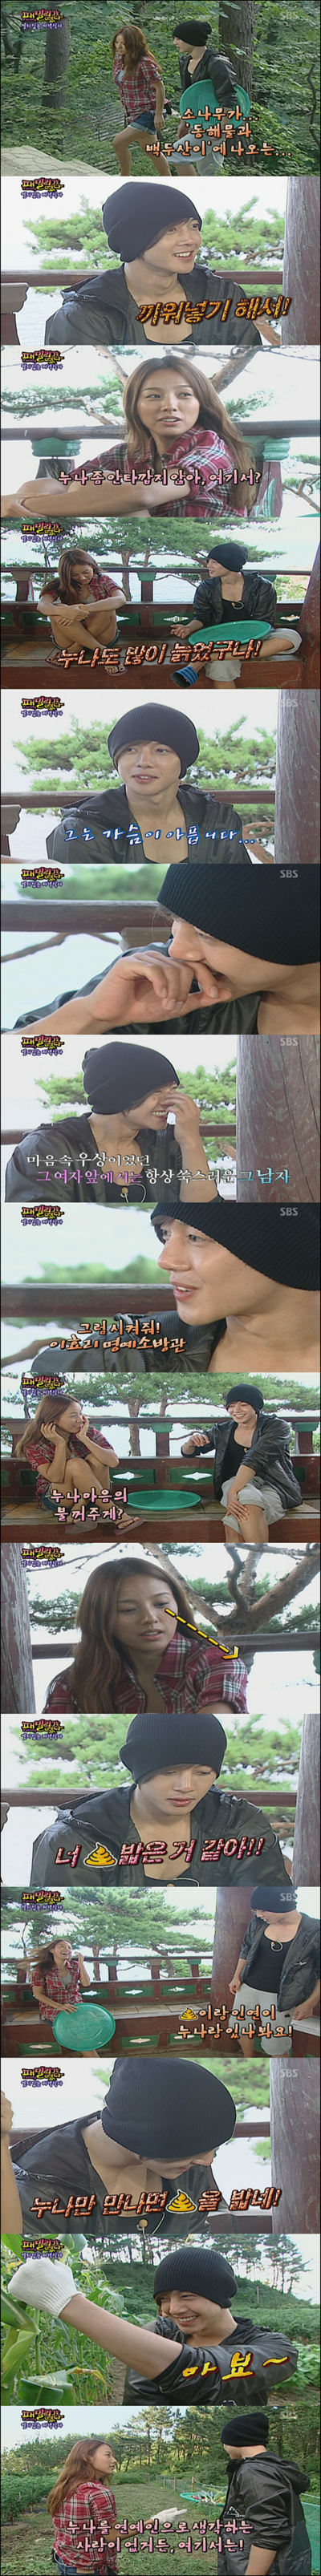 HJL with hyori unnie long caps